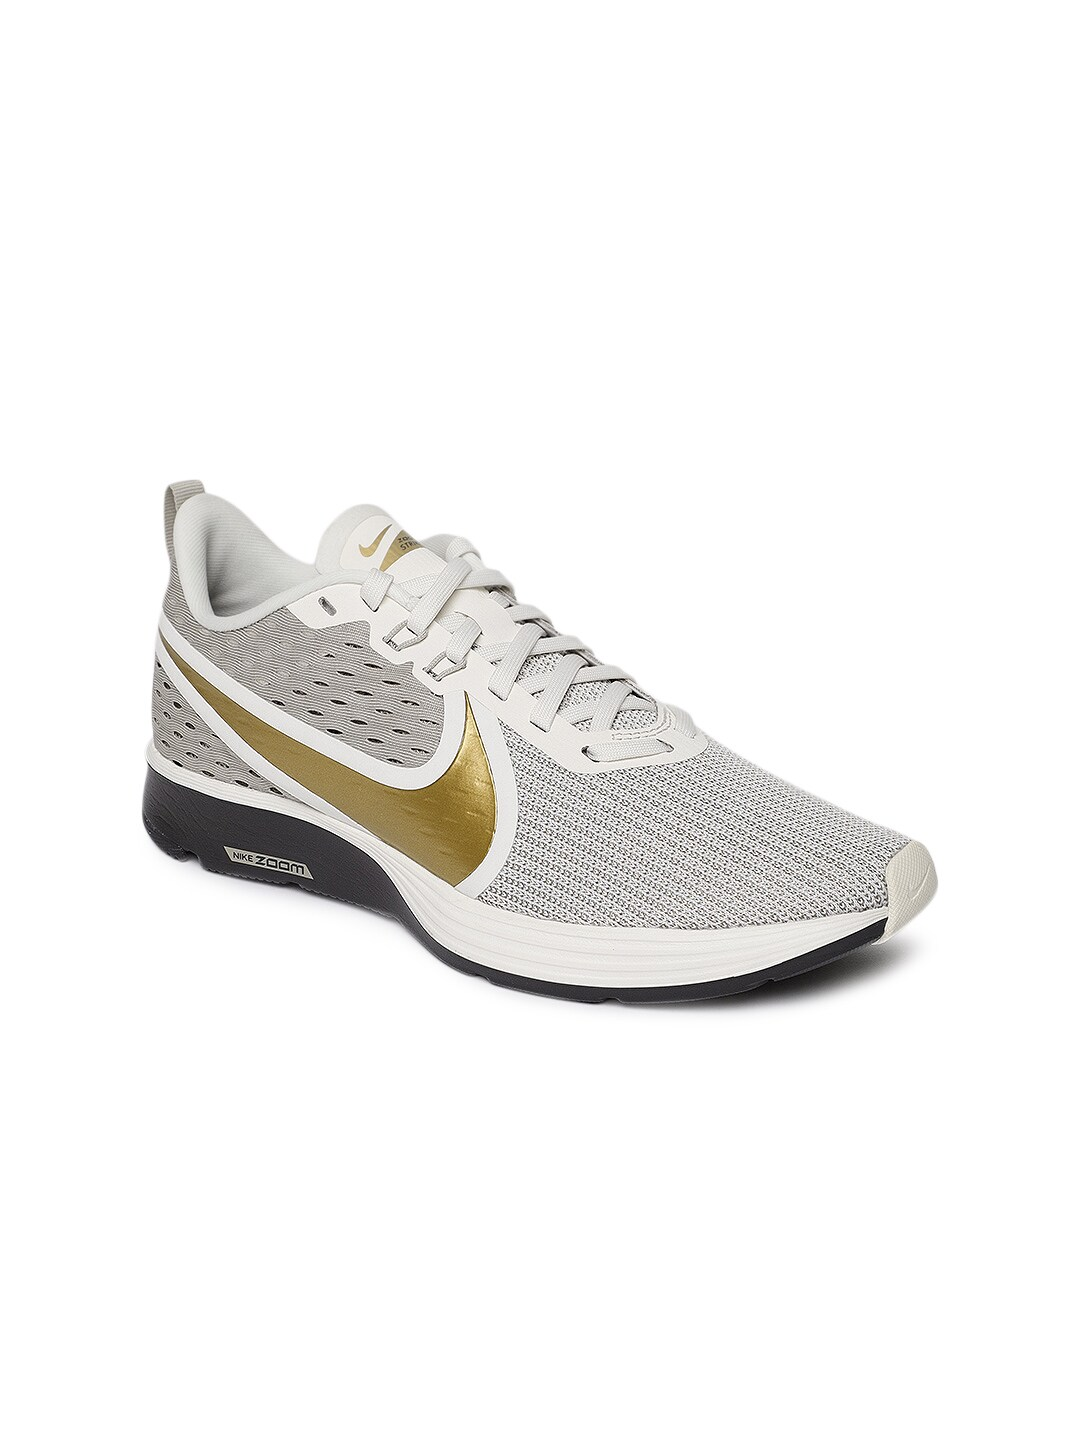 3b36a3fdd007a Women s Nike Shoes - Buy Nike Shoes for Women Online in India